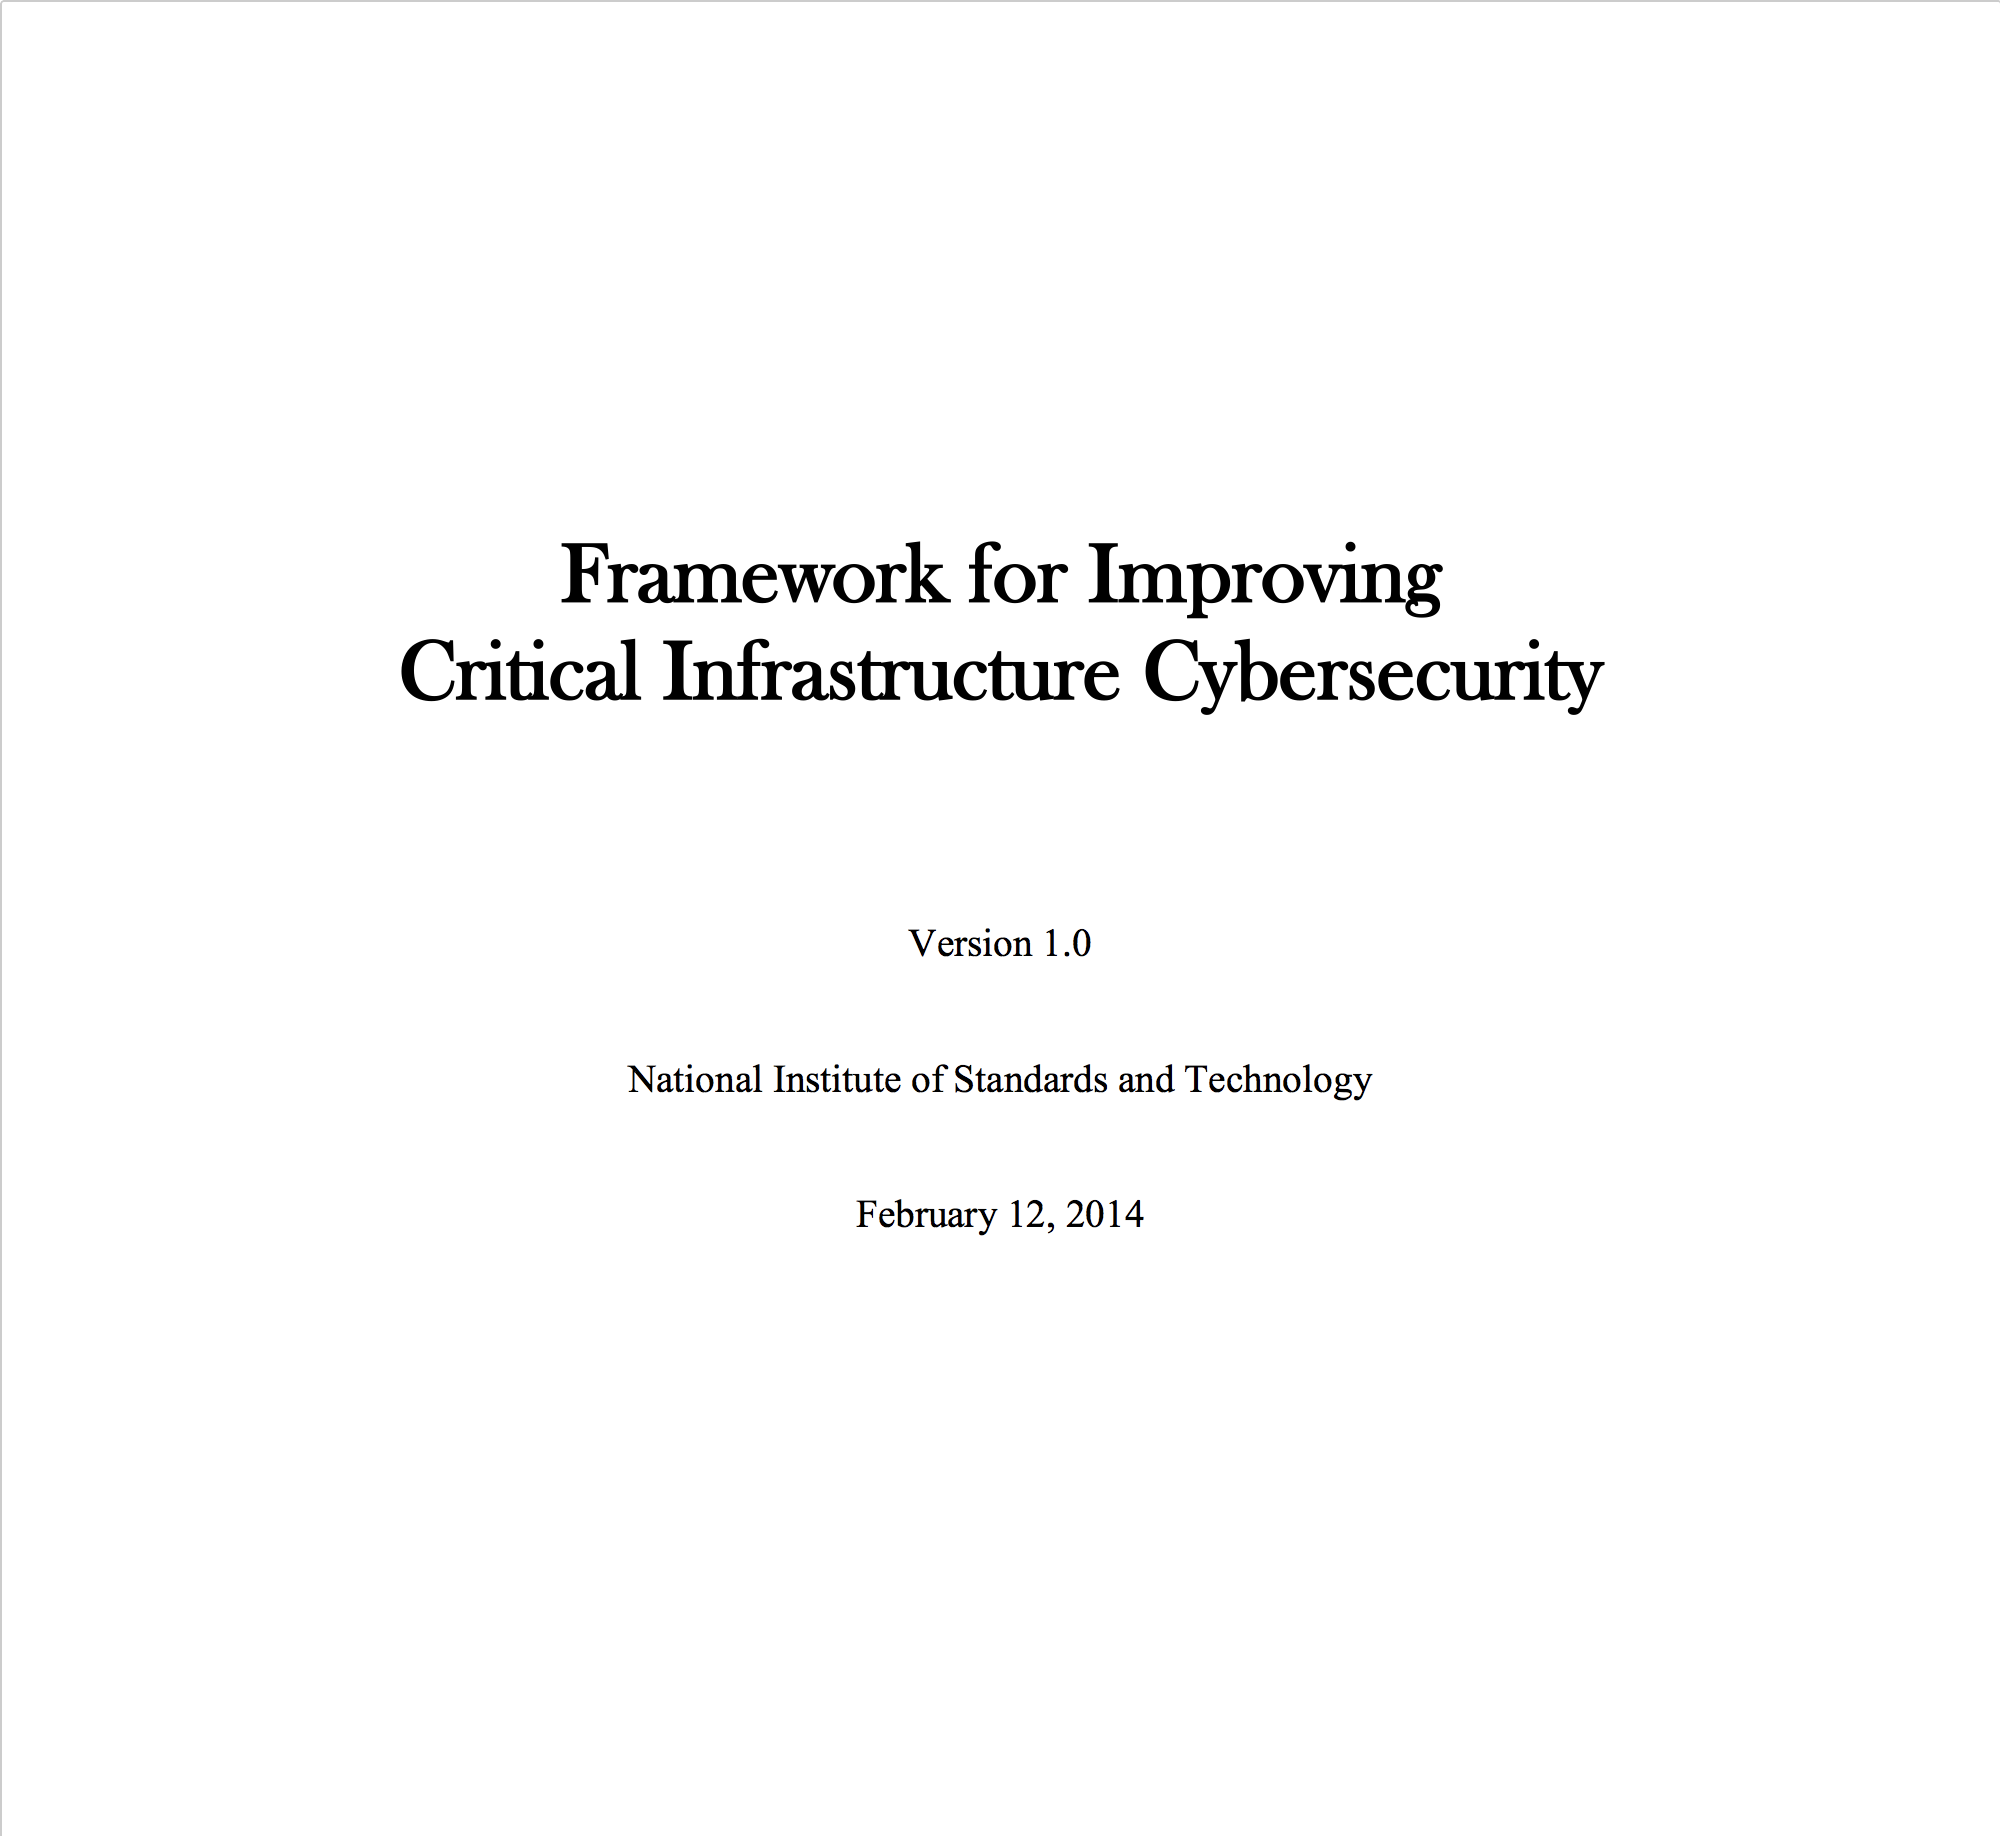 NIST: Improving Critical Infrastructure